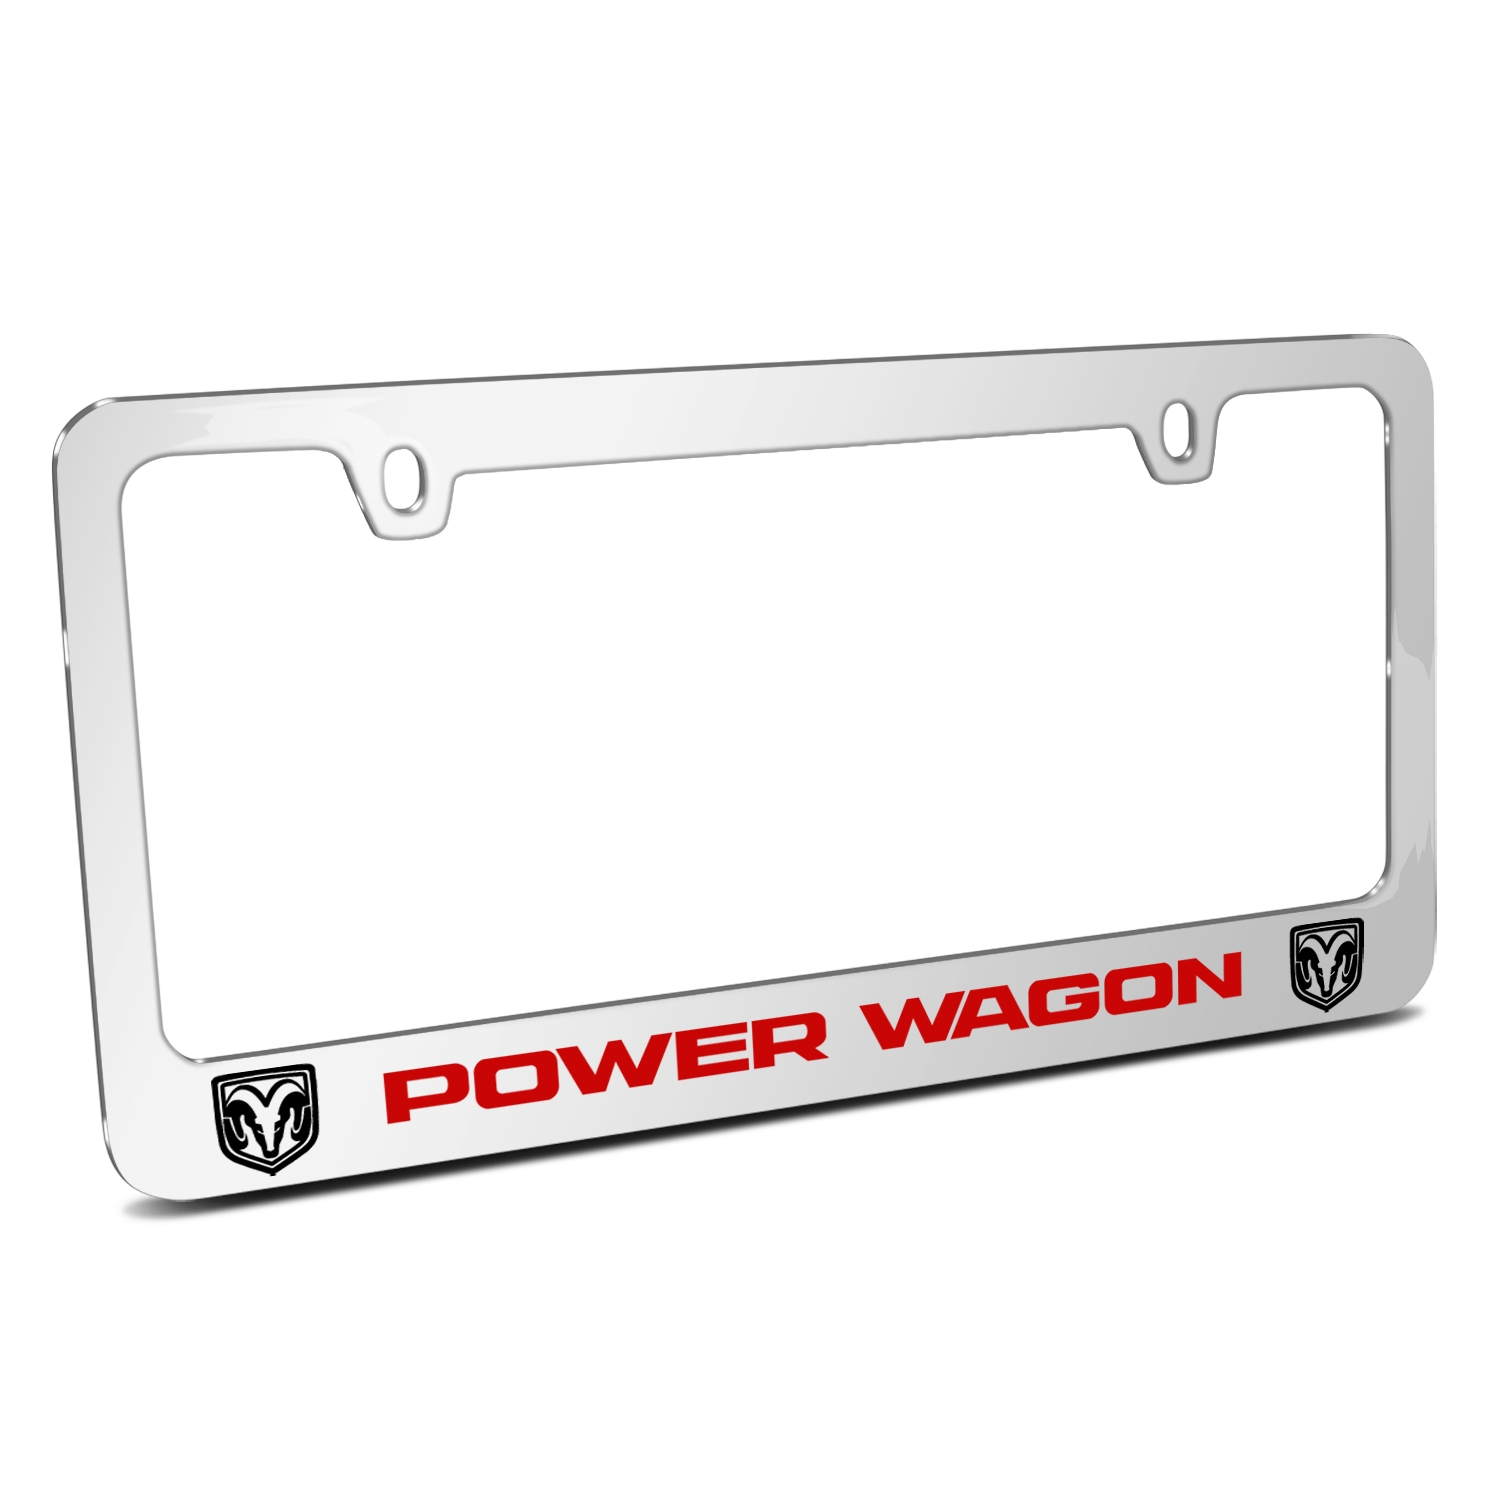 RAM Power Wagon Dual Logos Mirror Chrome Metal License Plate Frame